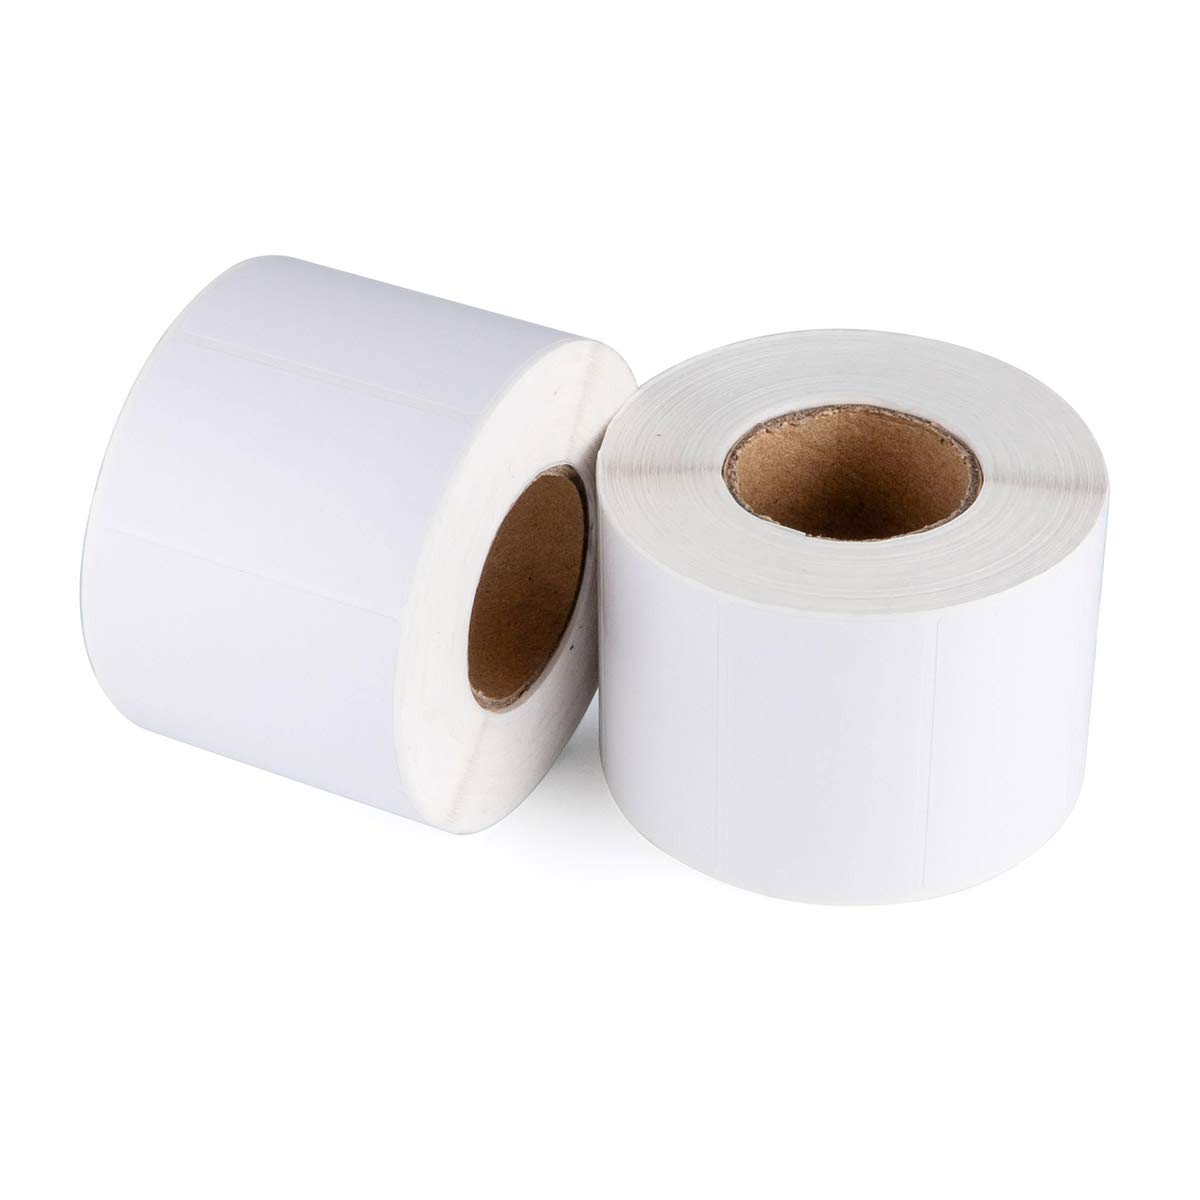 TIANSE White Direct Thermal Label Paper for DYMO LabelWriter 450/450